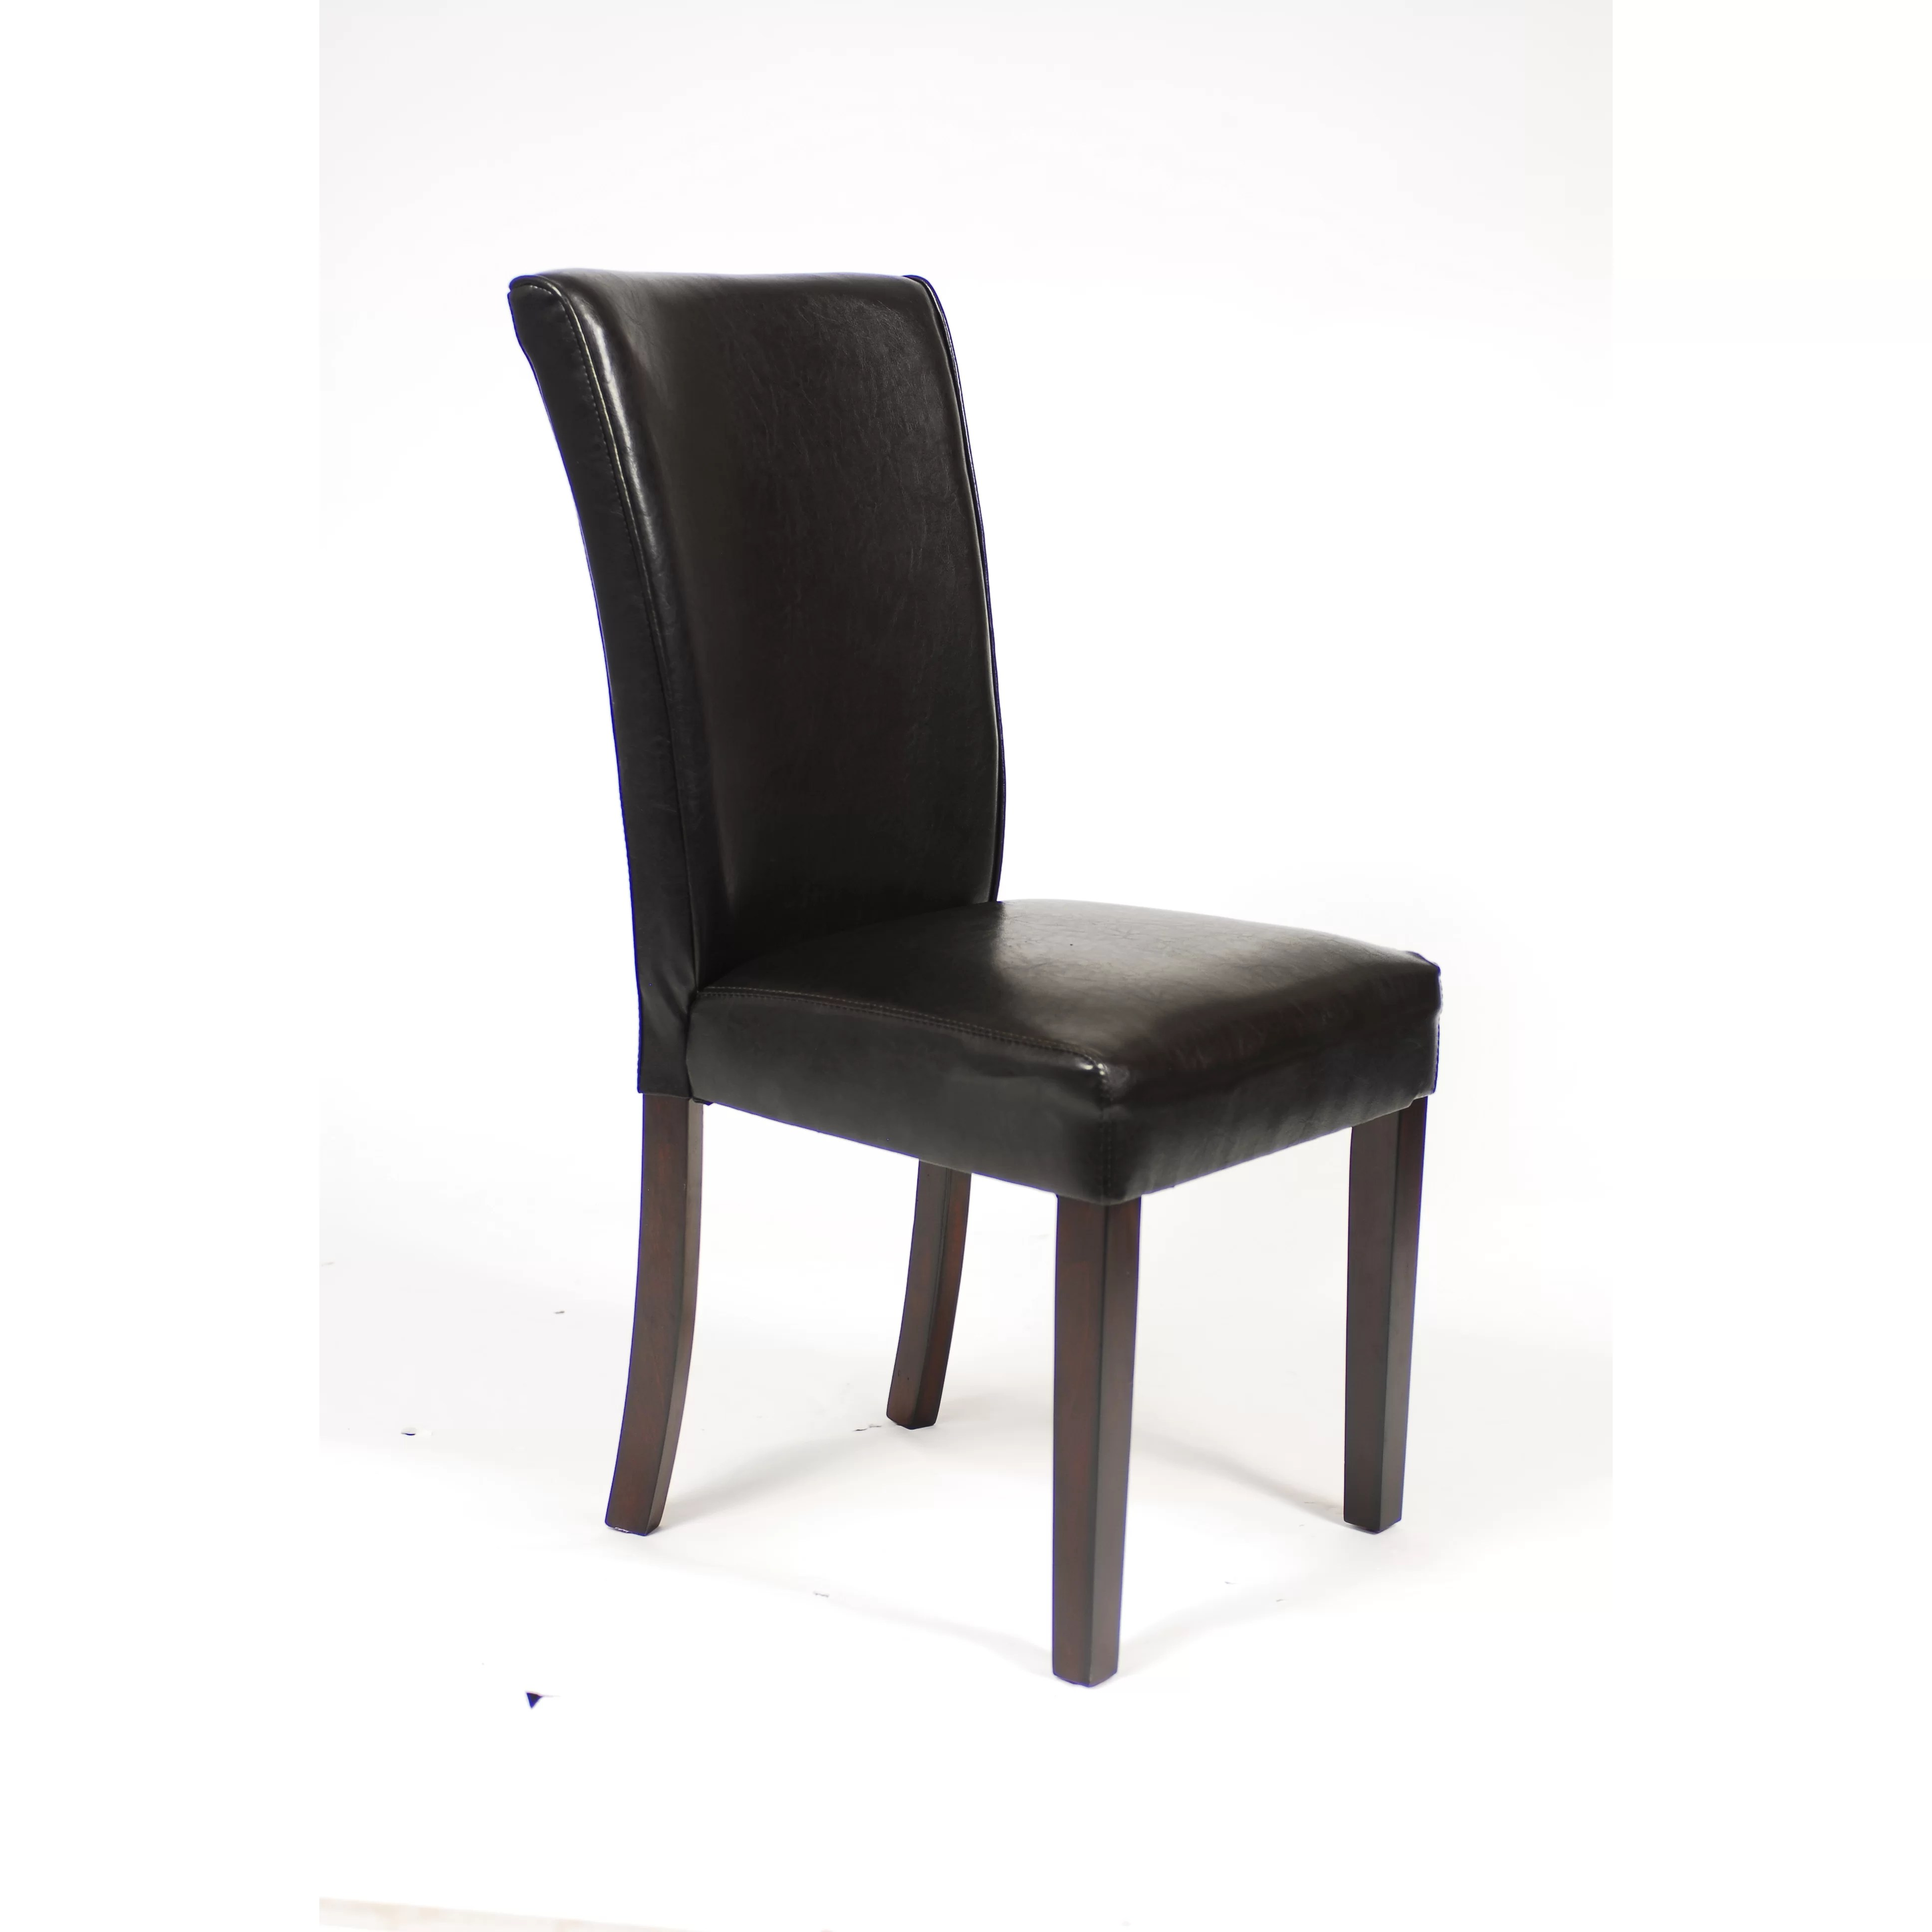 black parsons chair ebay uk ikea covers roundhill furniture leatherette parson